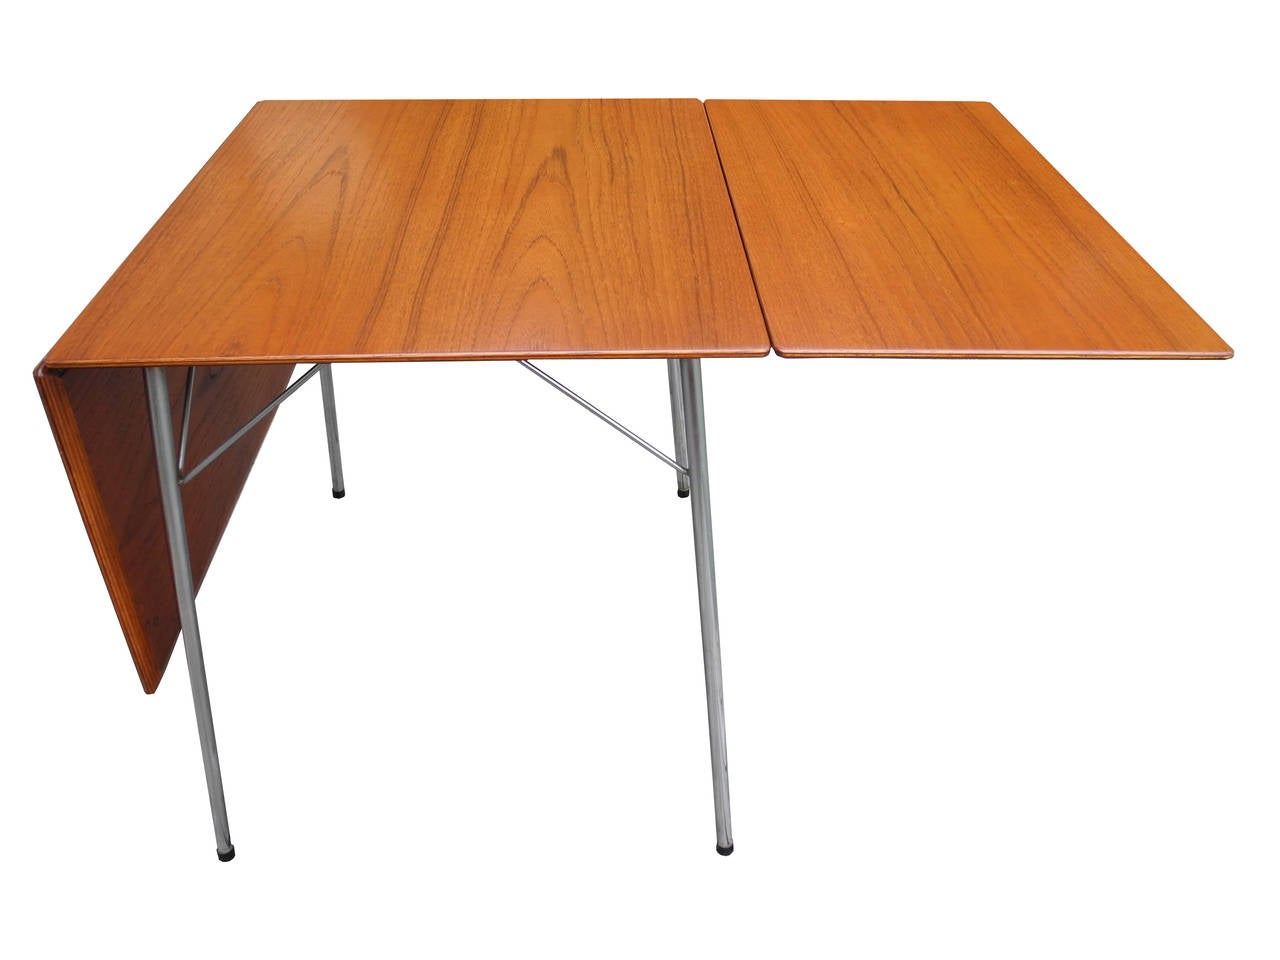 Arne jacobsen folding dining table at 1stdibs - Foldable dining table ...